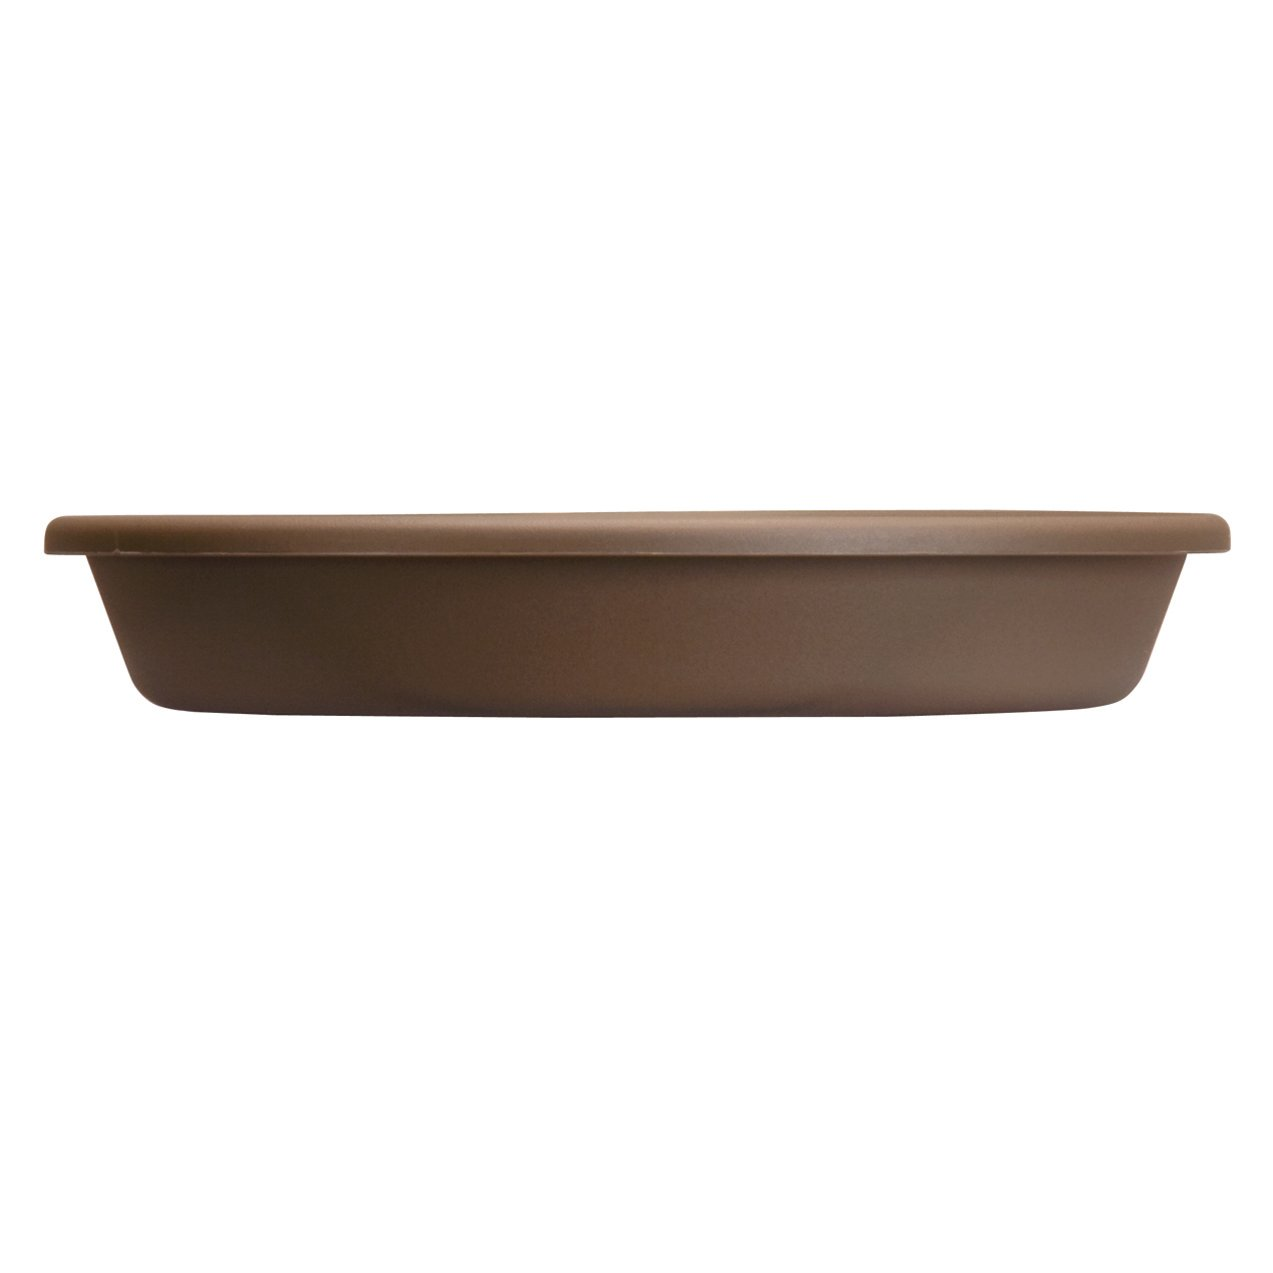 Akro-Mils SLI17000E21 Classic Saucer for 16-Inch Classic Pot, Chocolate, 16.13-Inch by Akro-Mils